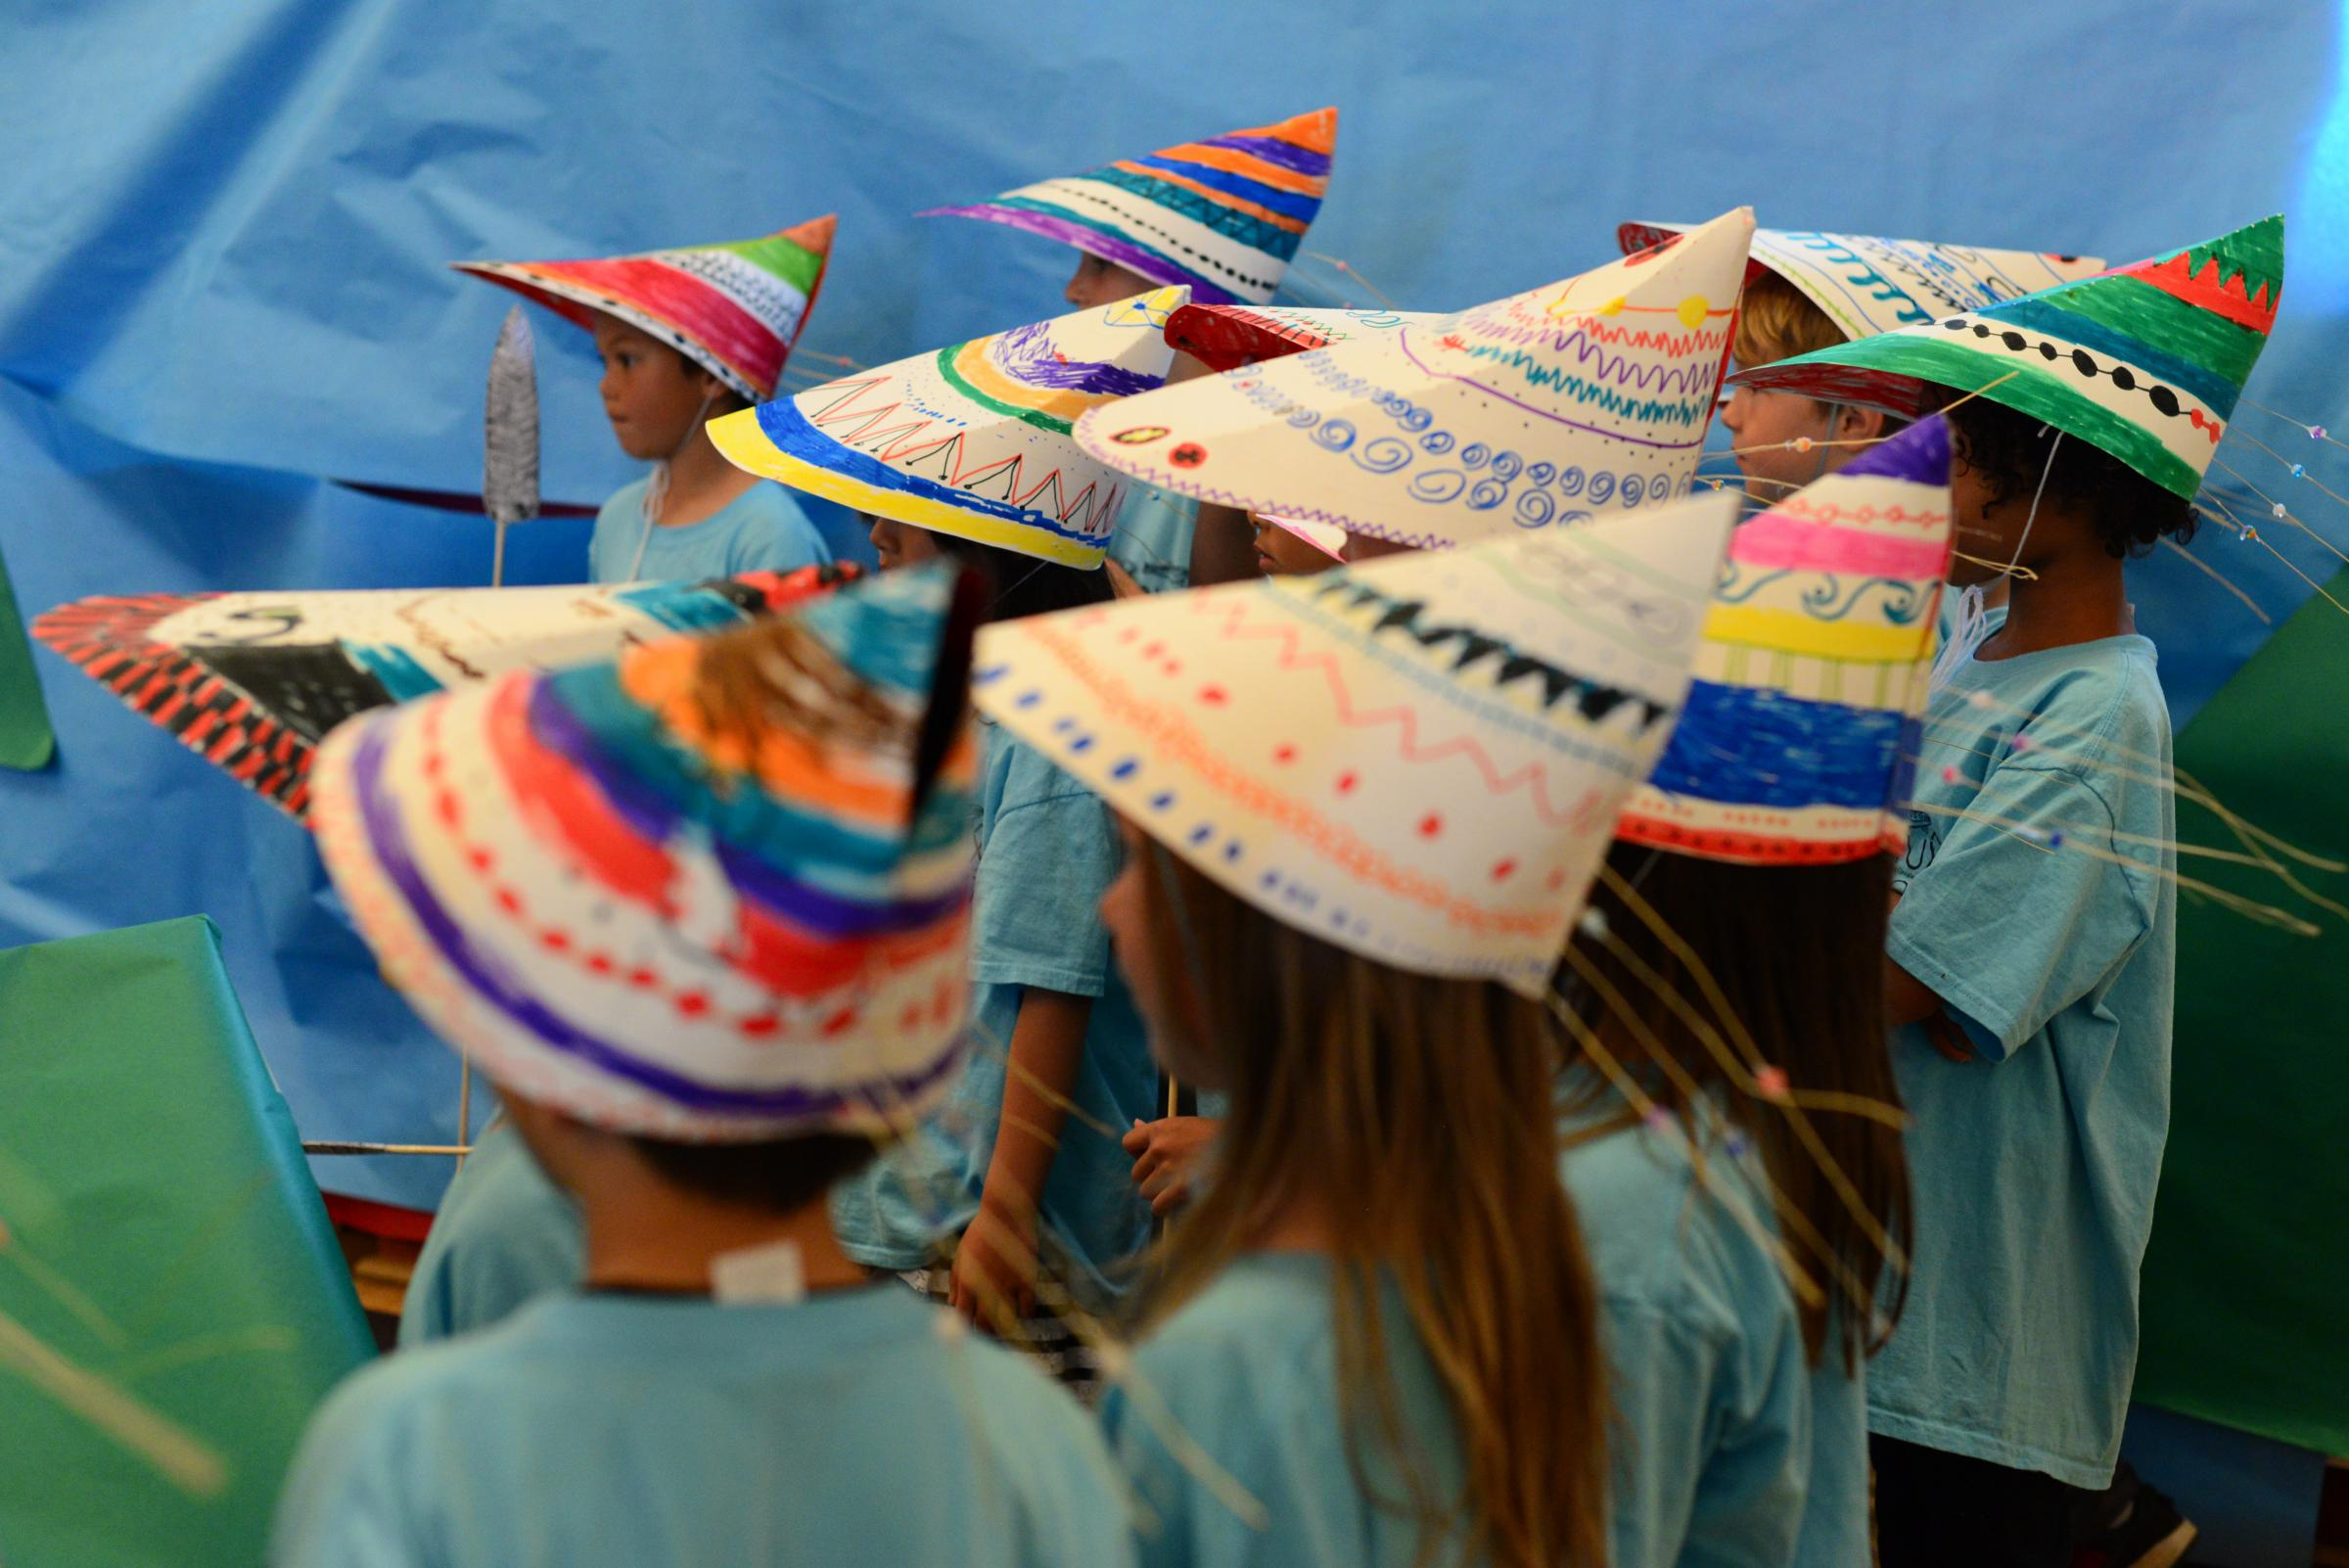 Campers decorated their own bentwood hats based on traditional Unangan designs. (Photo by Berett Wilber/KUCB)